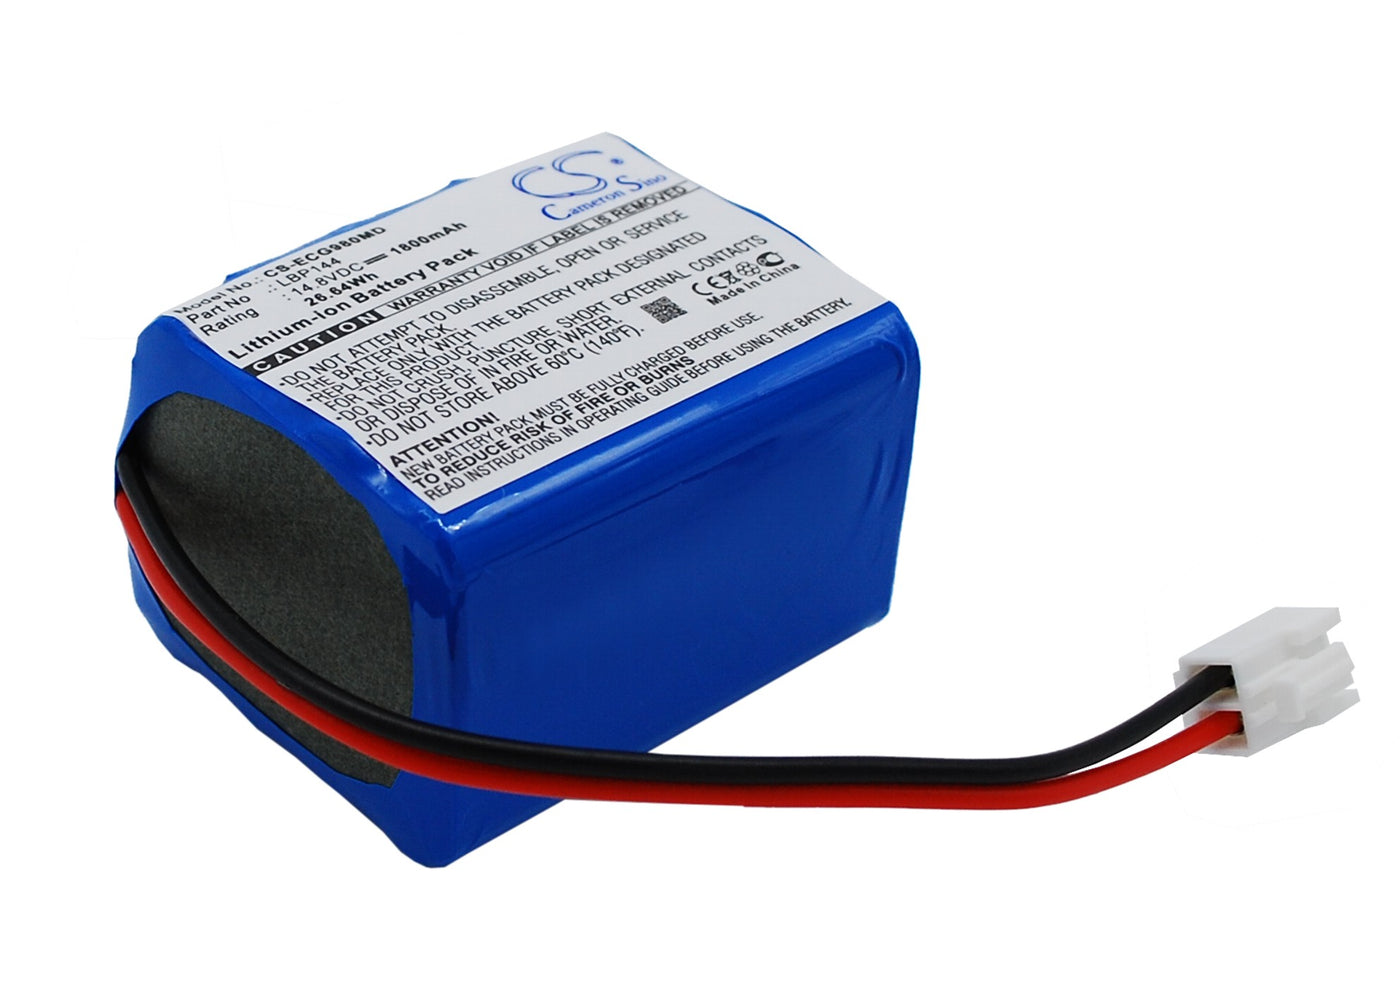 CS-ECG980MD Cameron Sino Battery